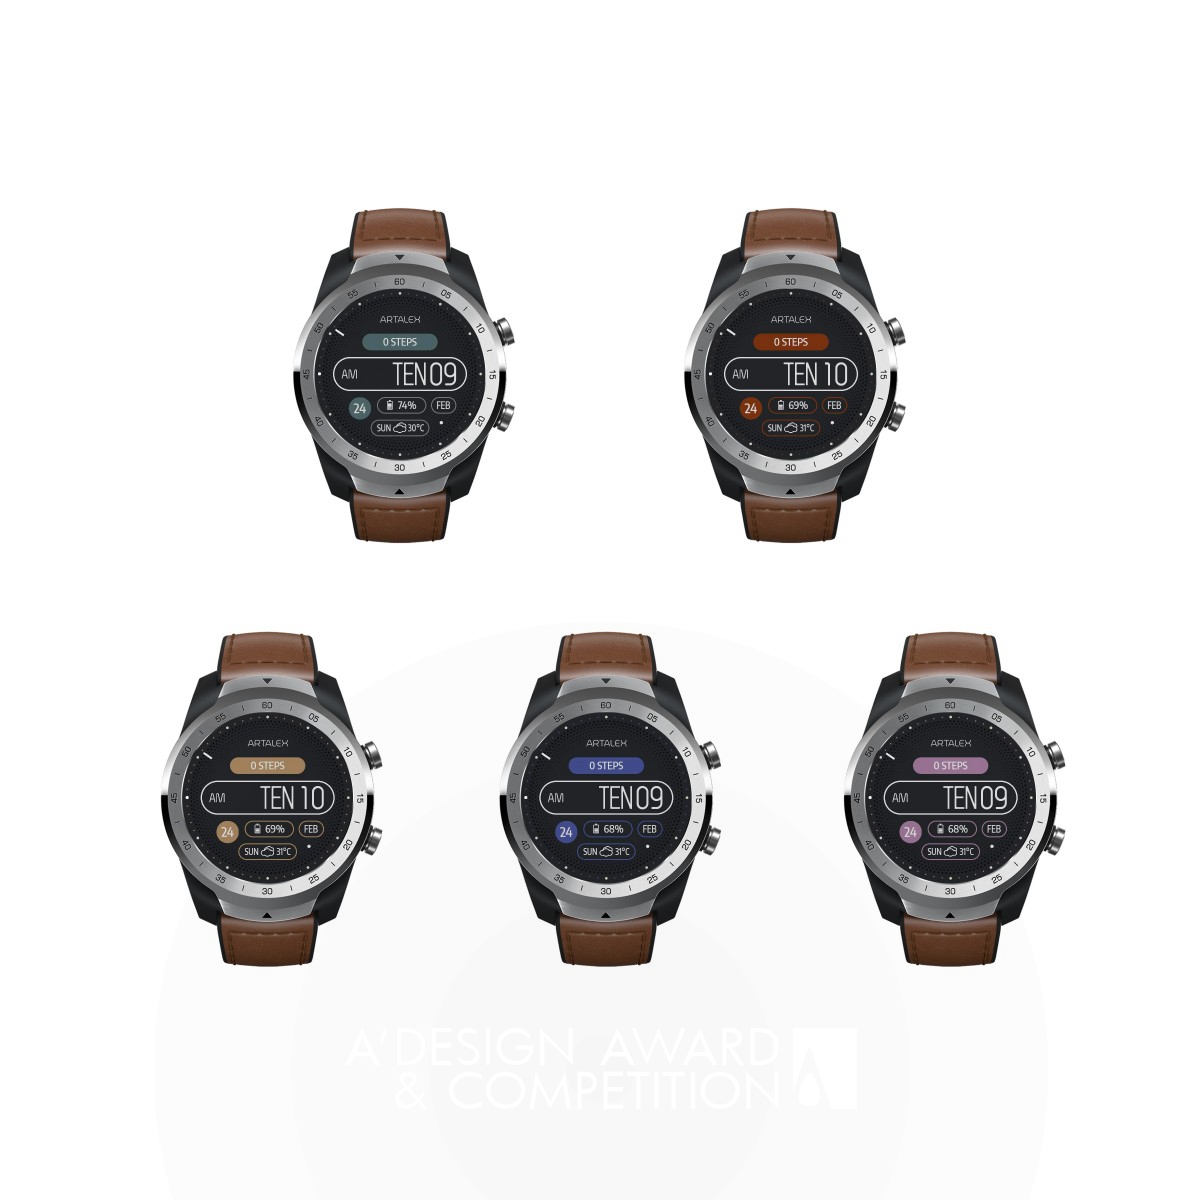 The English Numbers Smartwatch Watch Face